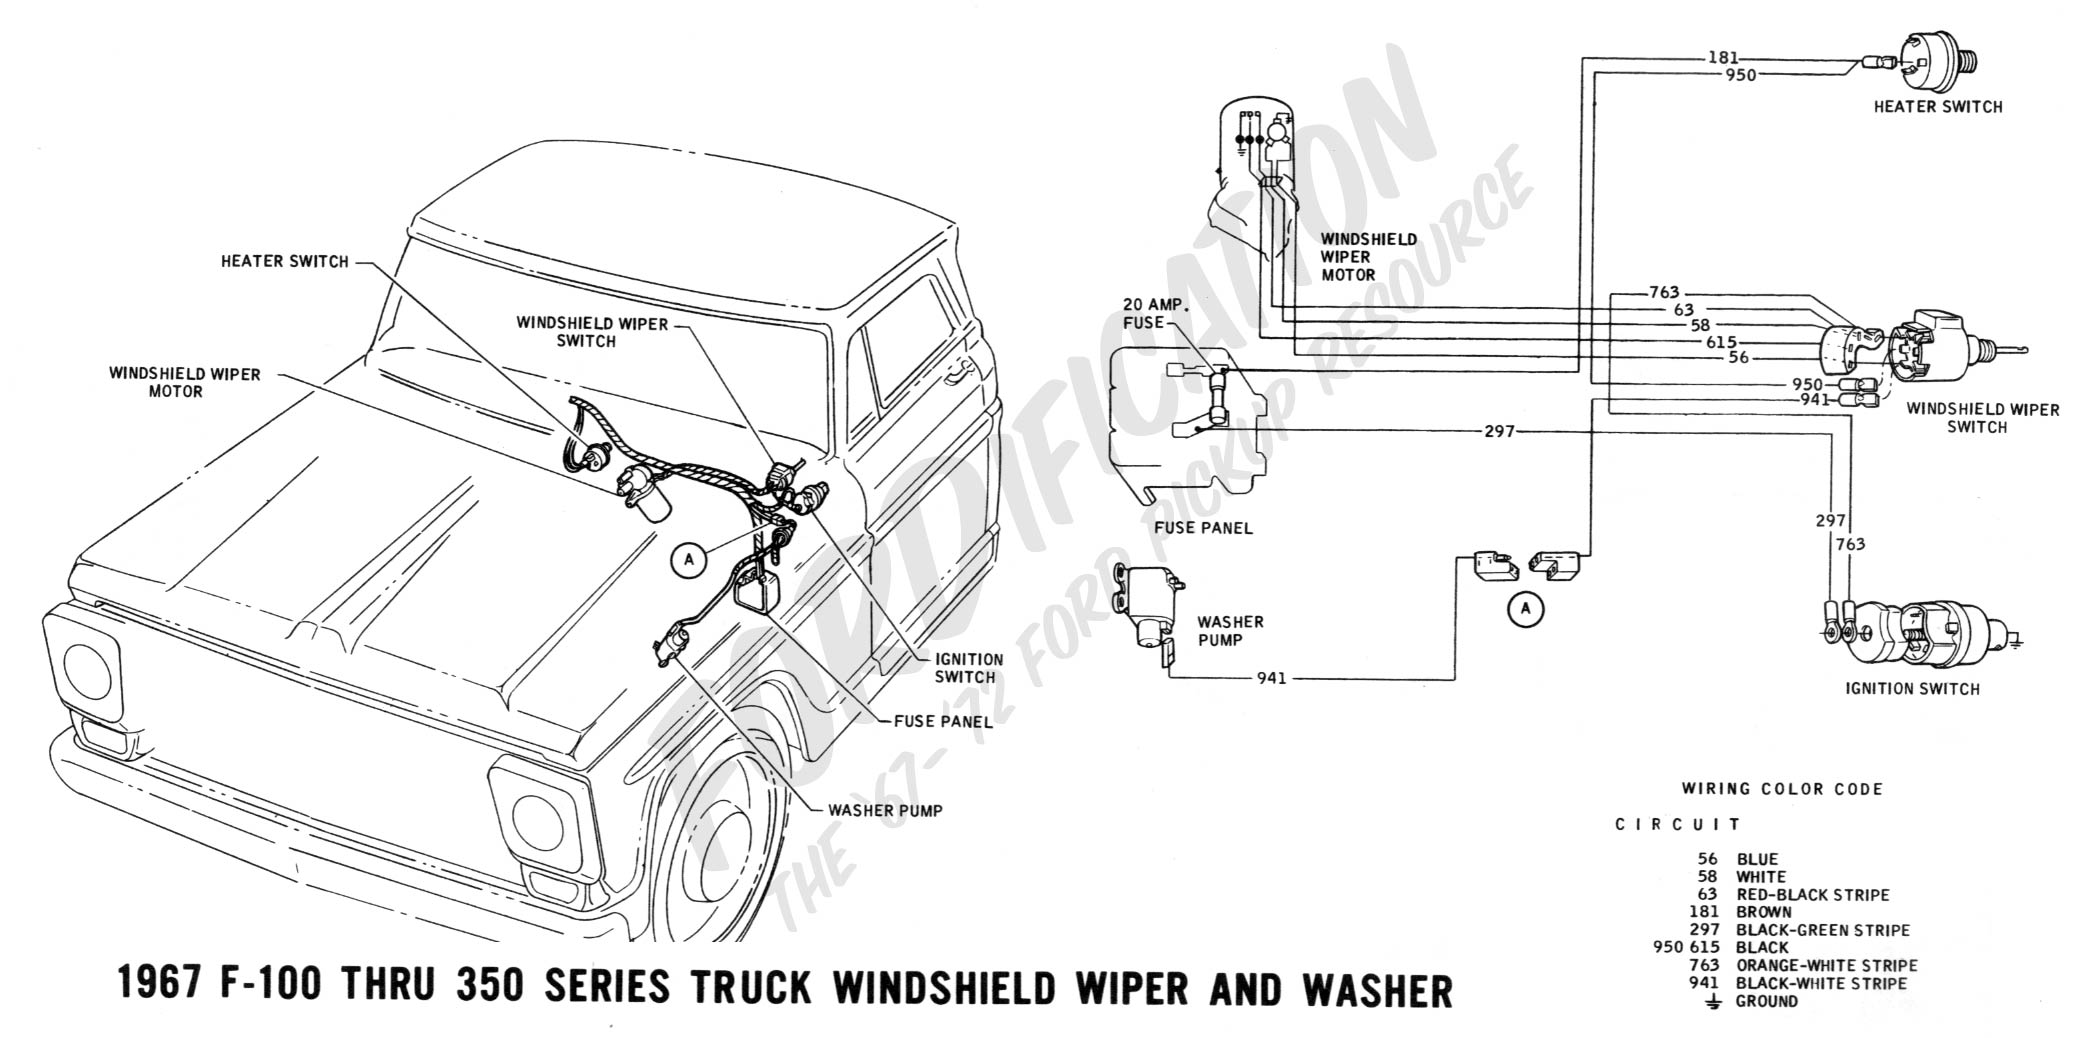 ford truck technical drawings and schematics section h wiring 65 ford f100 wiring diagram 1967 f 100 thru f 350 windshield wiper and washer